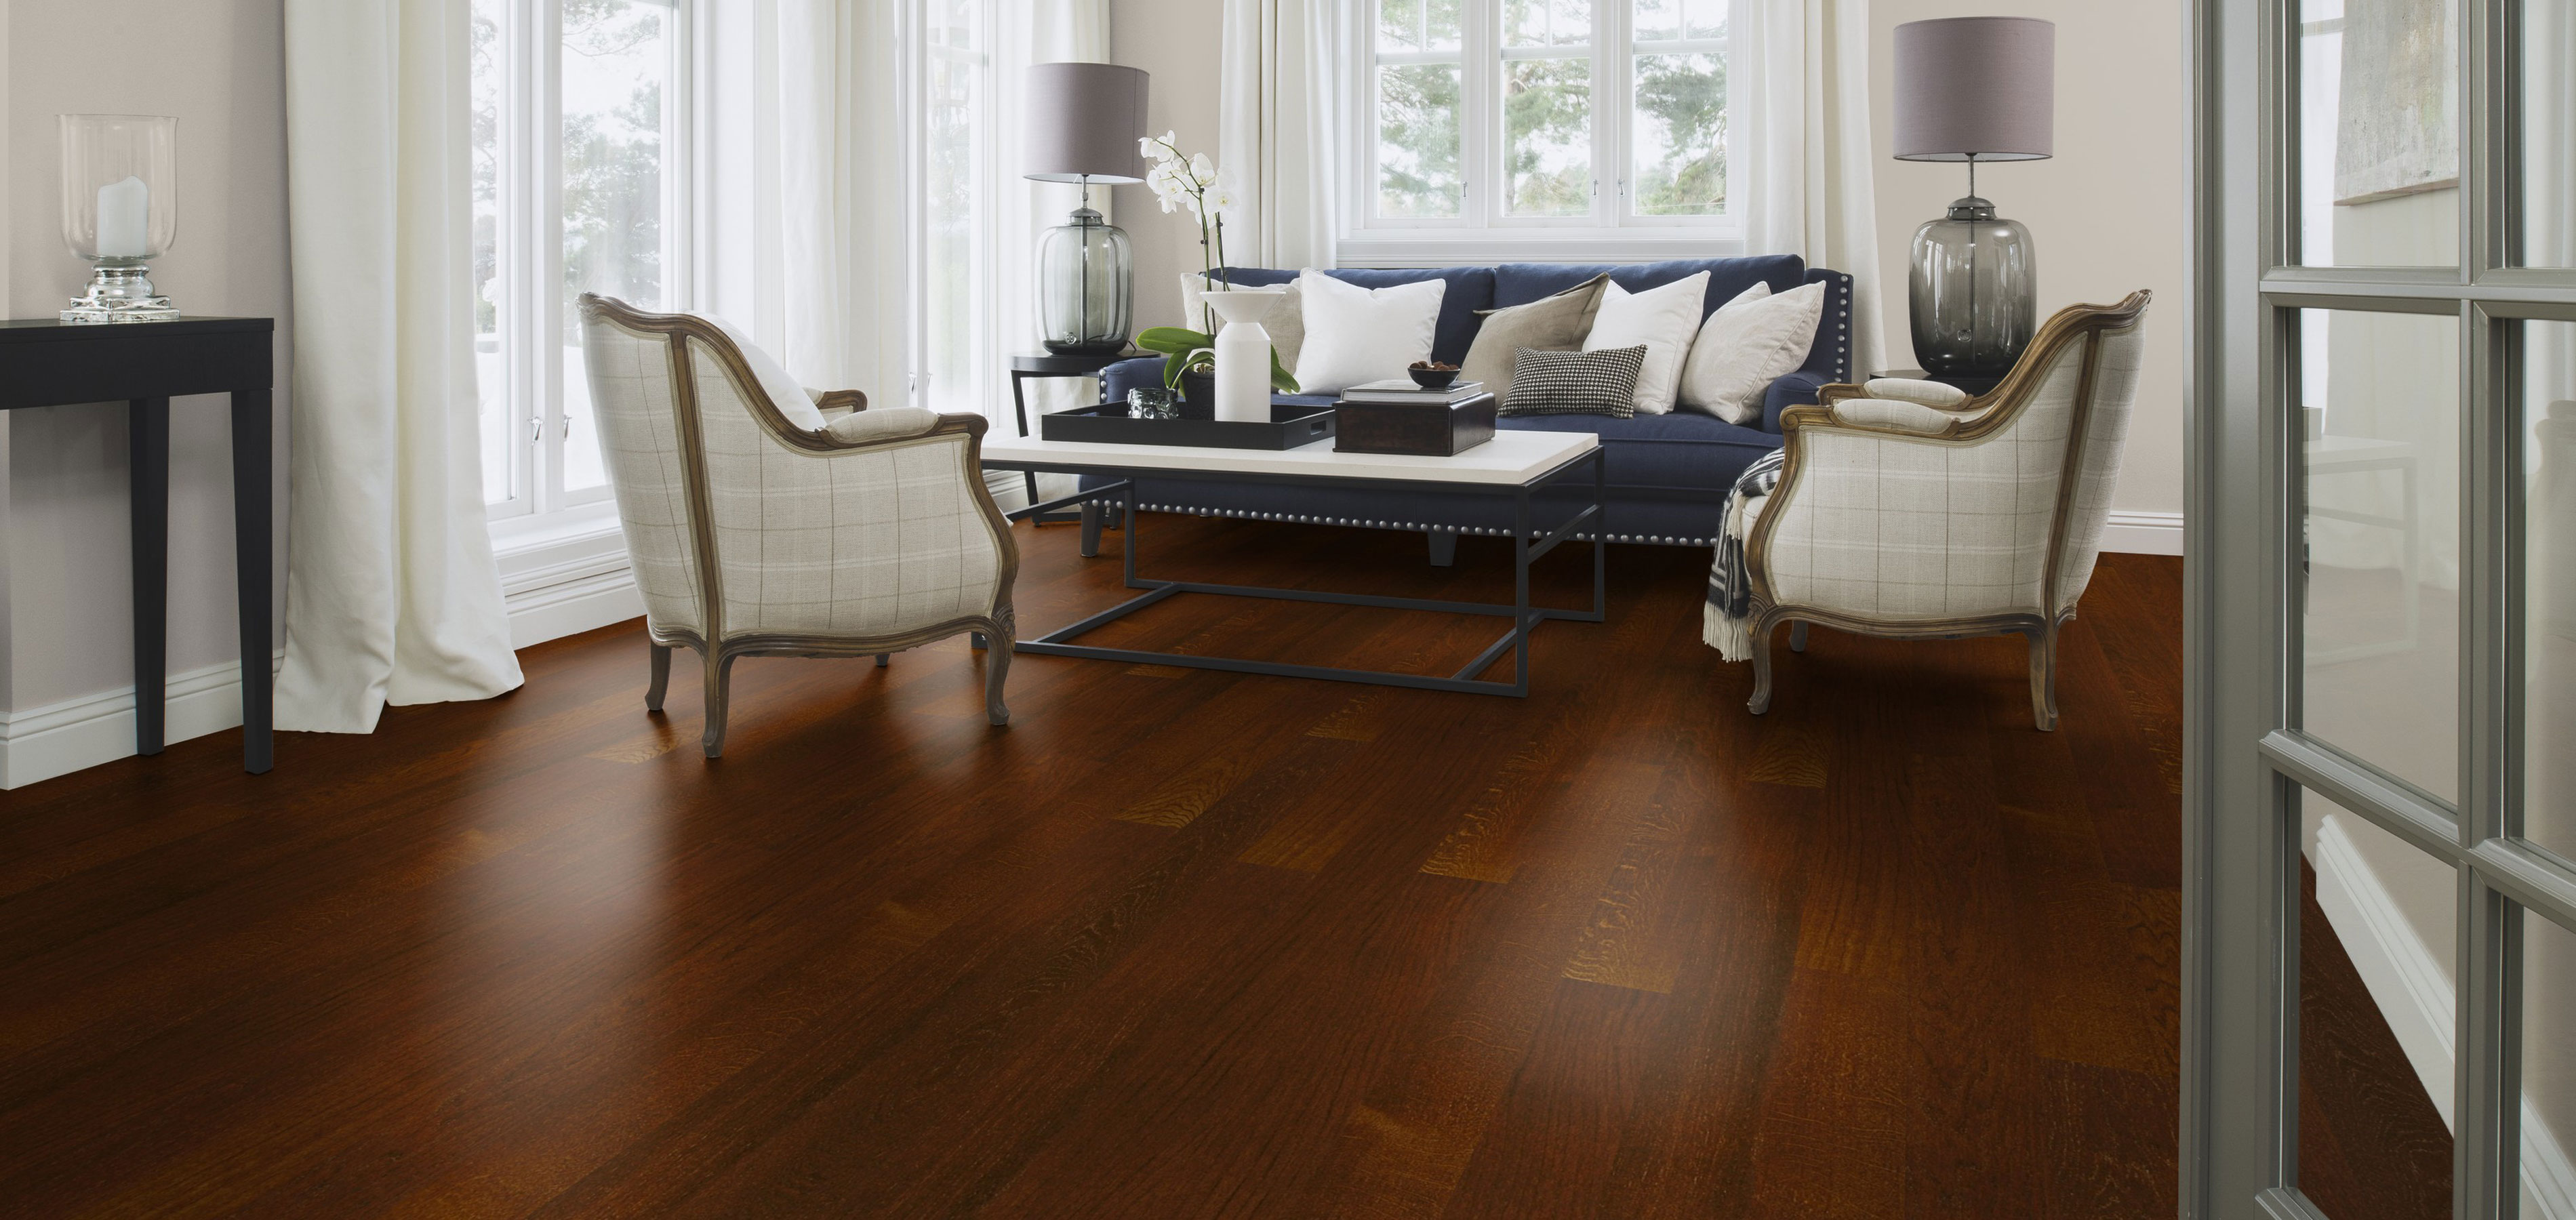 Boen flooring oak cocoa plank kapriz local hardwood for Wooden flooring dealers